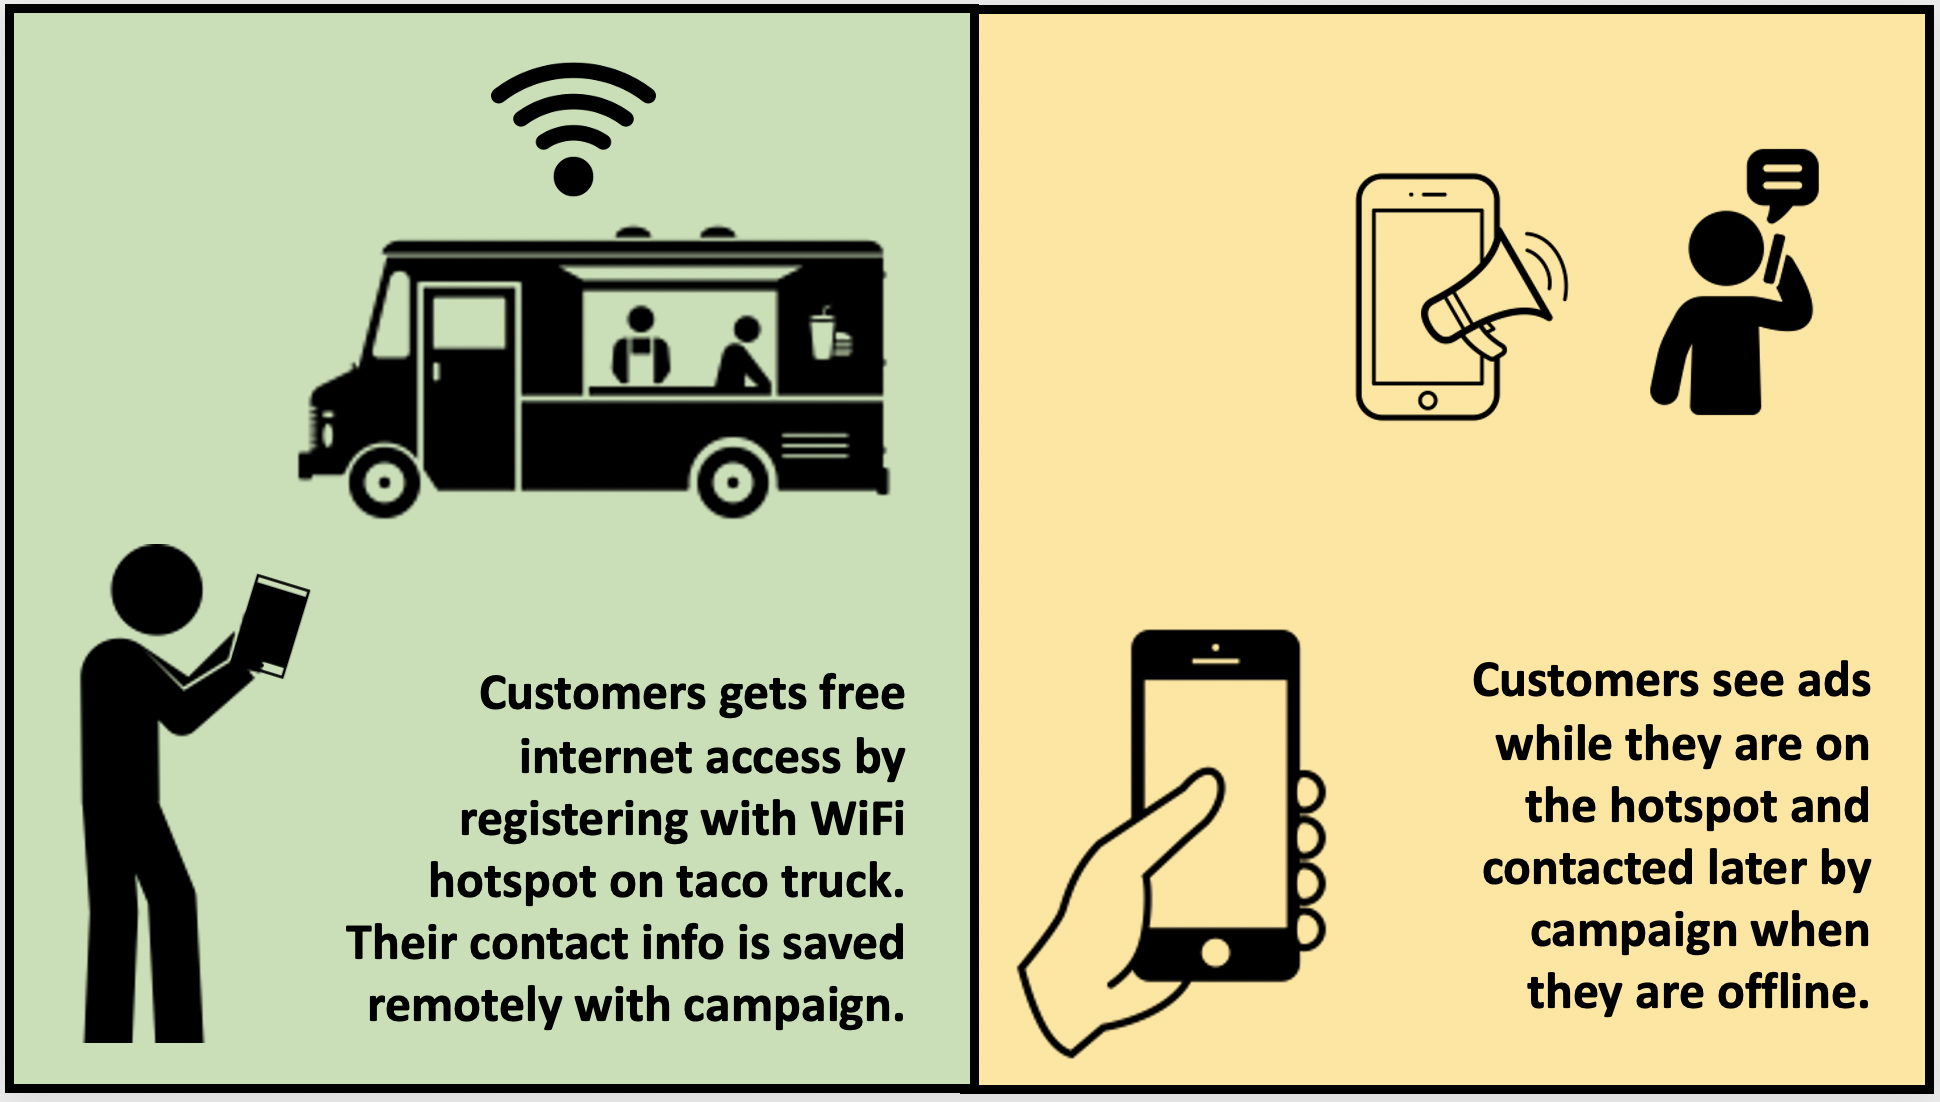 Customers get free internet access by registering with their contact details. They see ads while they are connected and can also be contacted afterwards while they are not connected to the hotspot.